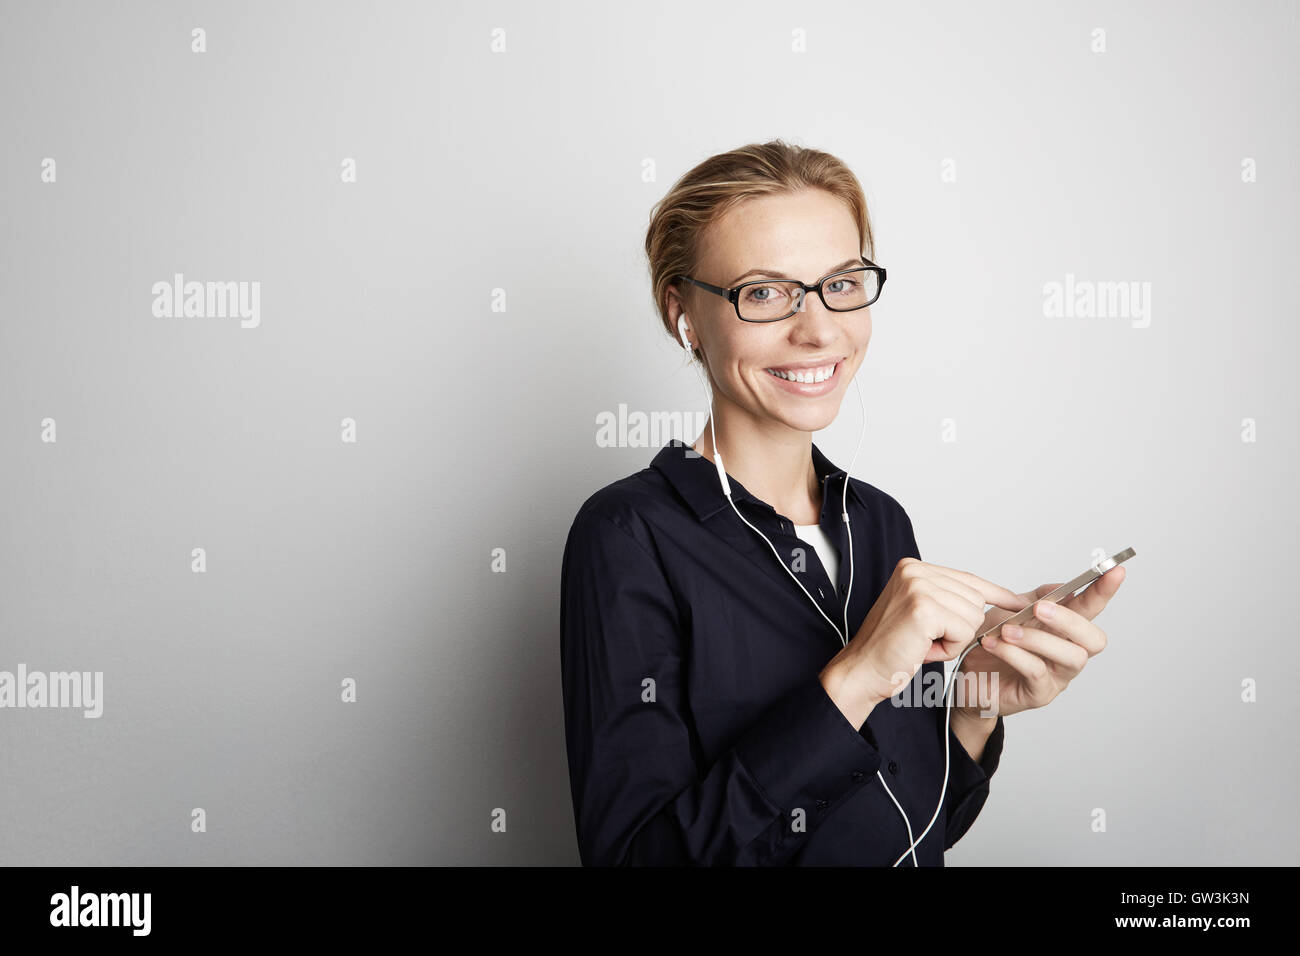 Portrait Handsome Young Woman Glasses Listening Music Smartphone Mobile Headphones Blank White Background.Pretty - Stock Image